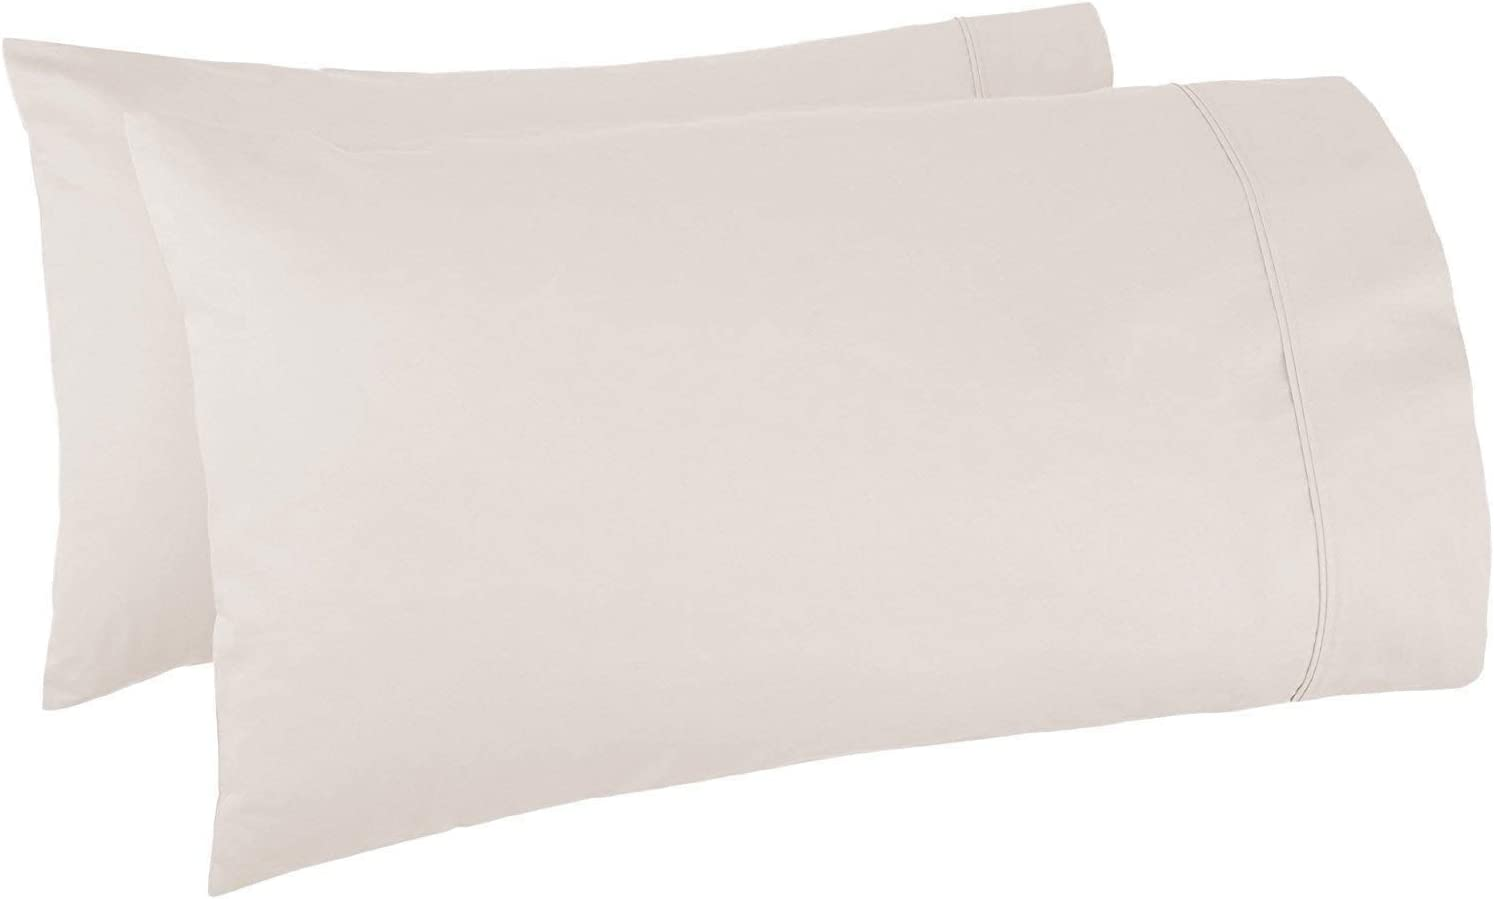 KAMAS HOME COLLECTION 1000 Thread Count,100% Egyptian Cotton Pillow Cases King Size Set of 2 (Ivory King (21X41)) Pillow Cases Extra Long, Sateen Weave for Soft and Silky Feel.